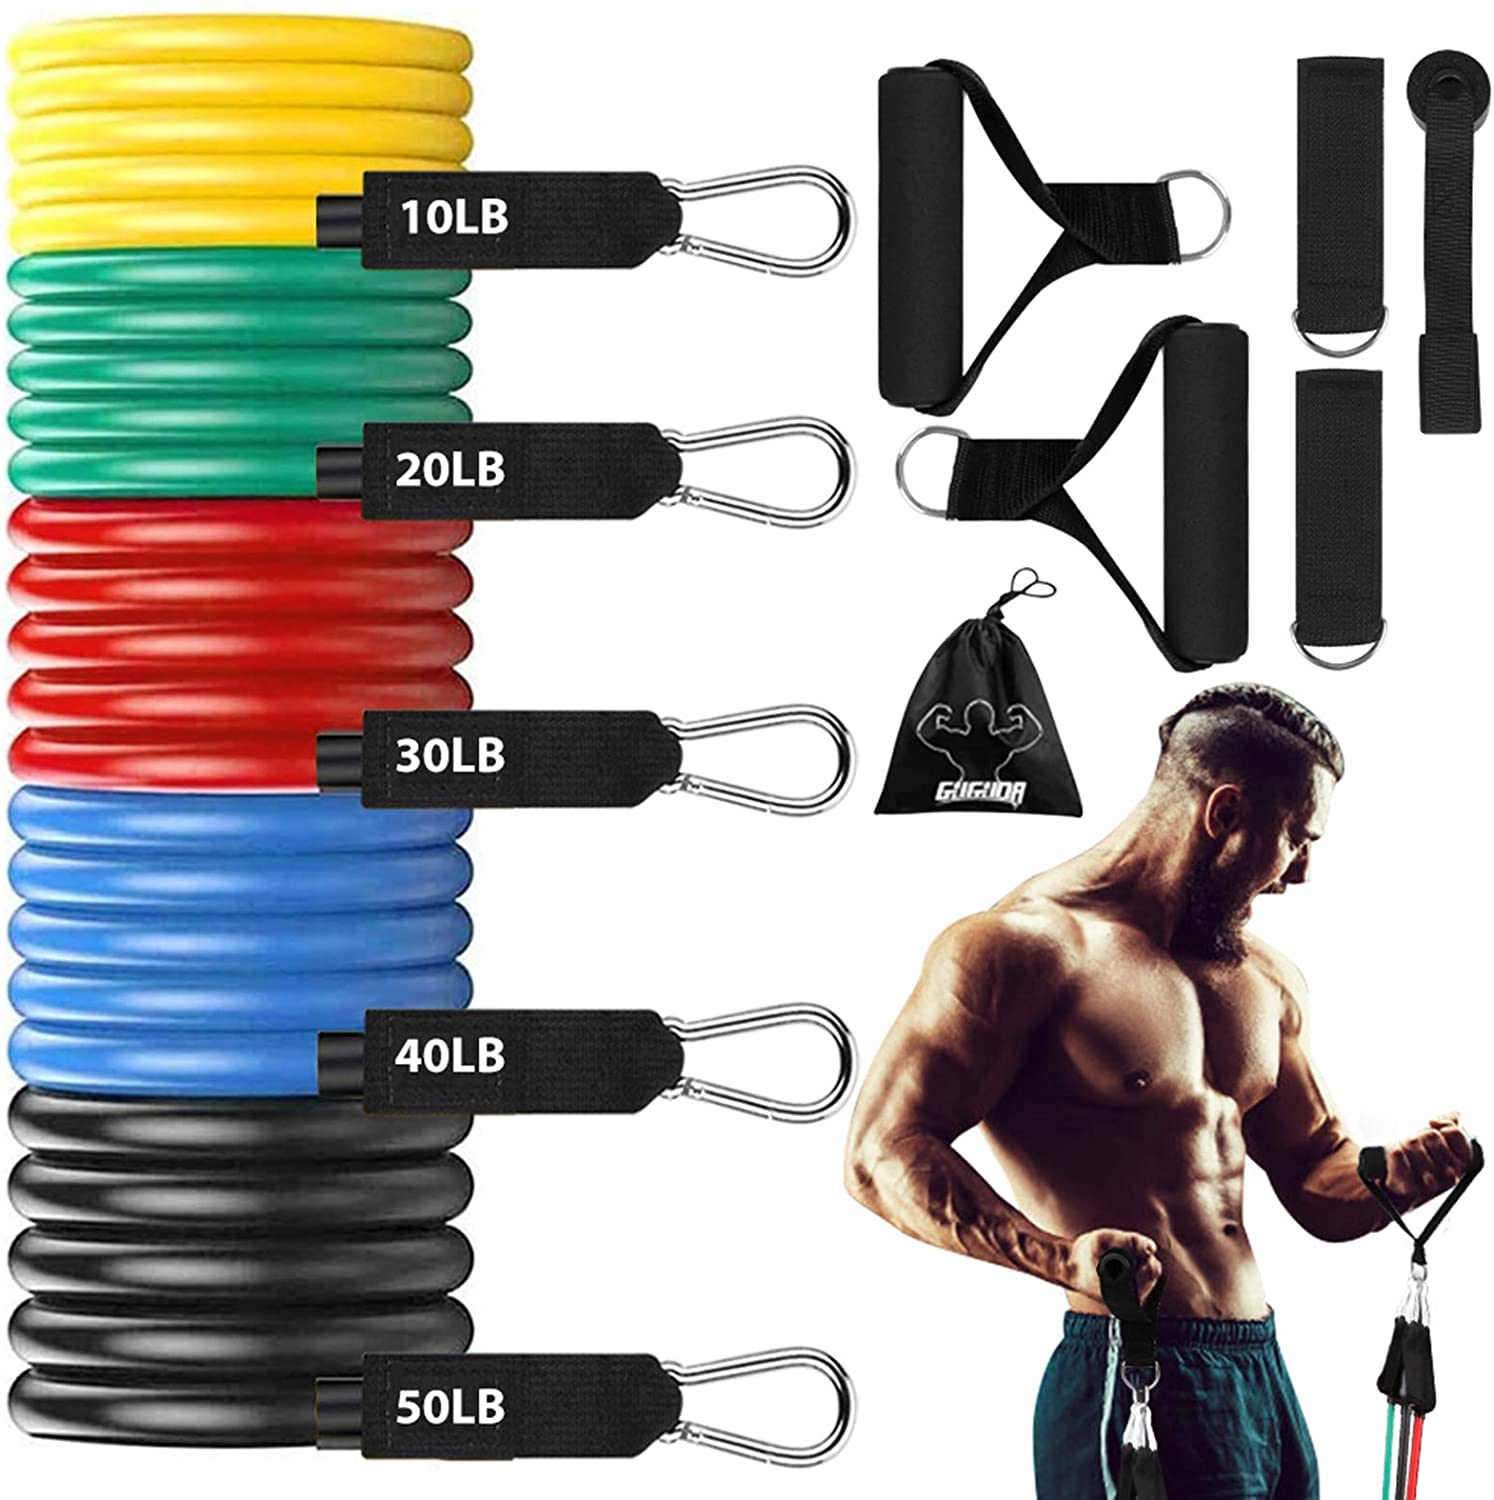 Resistance Band Set 11pcs Workout Bands Include 5 Exercise Bands